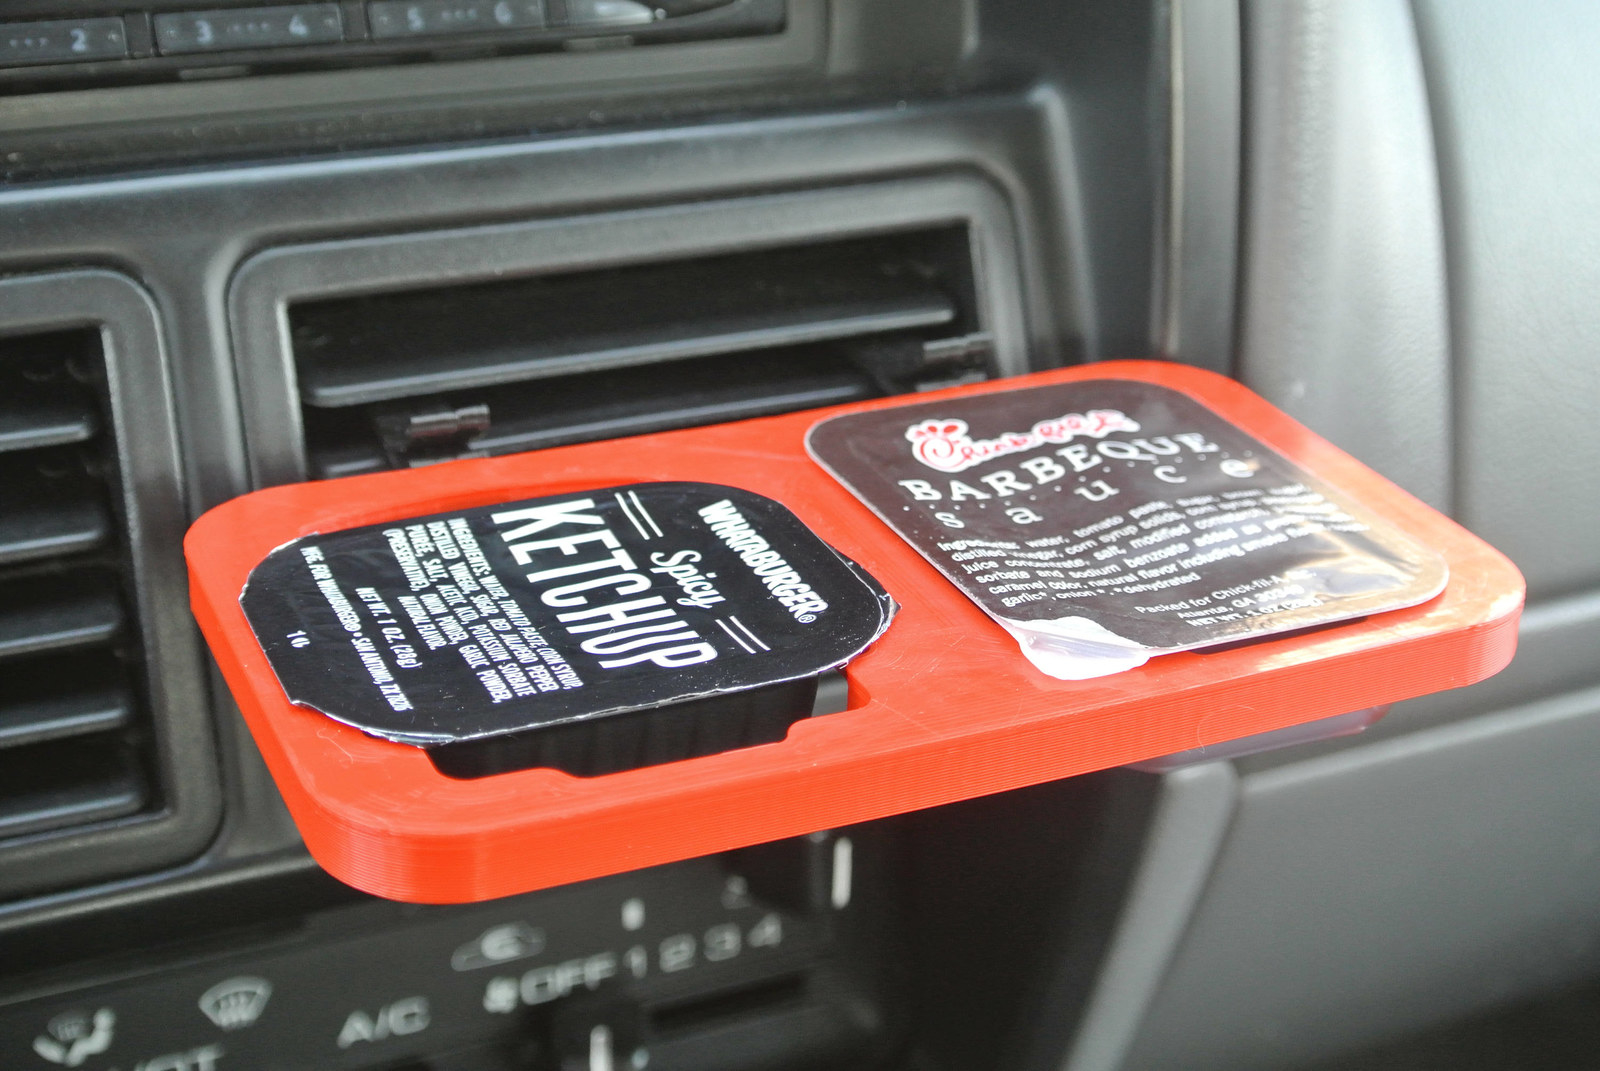 orange double sauce holder attached to car air vent holding two fast food sauce packs